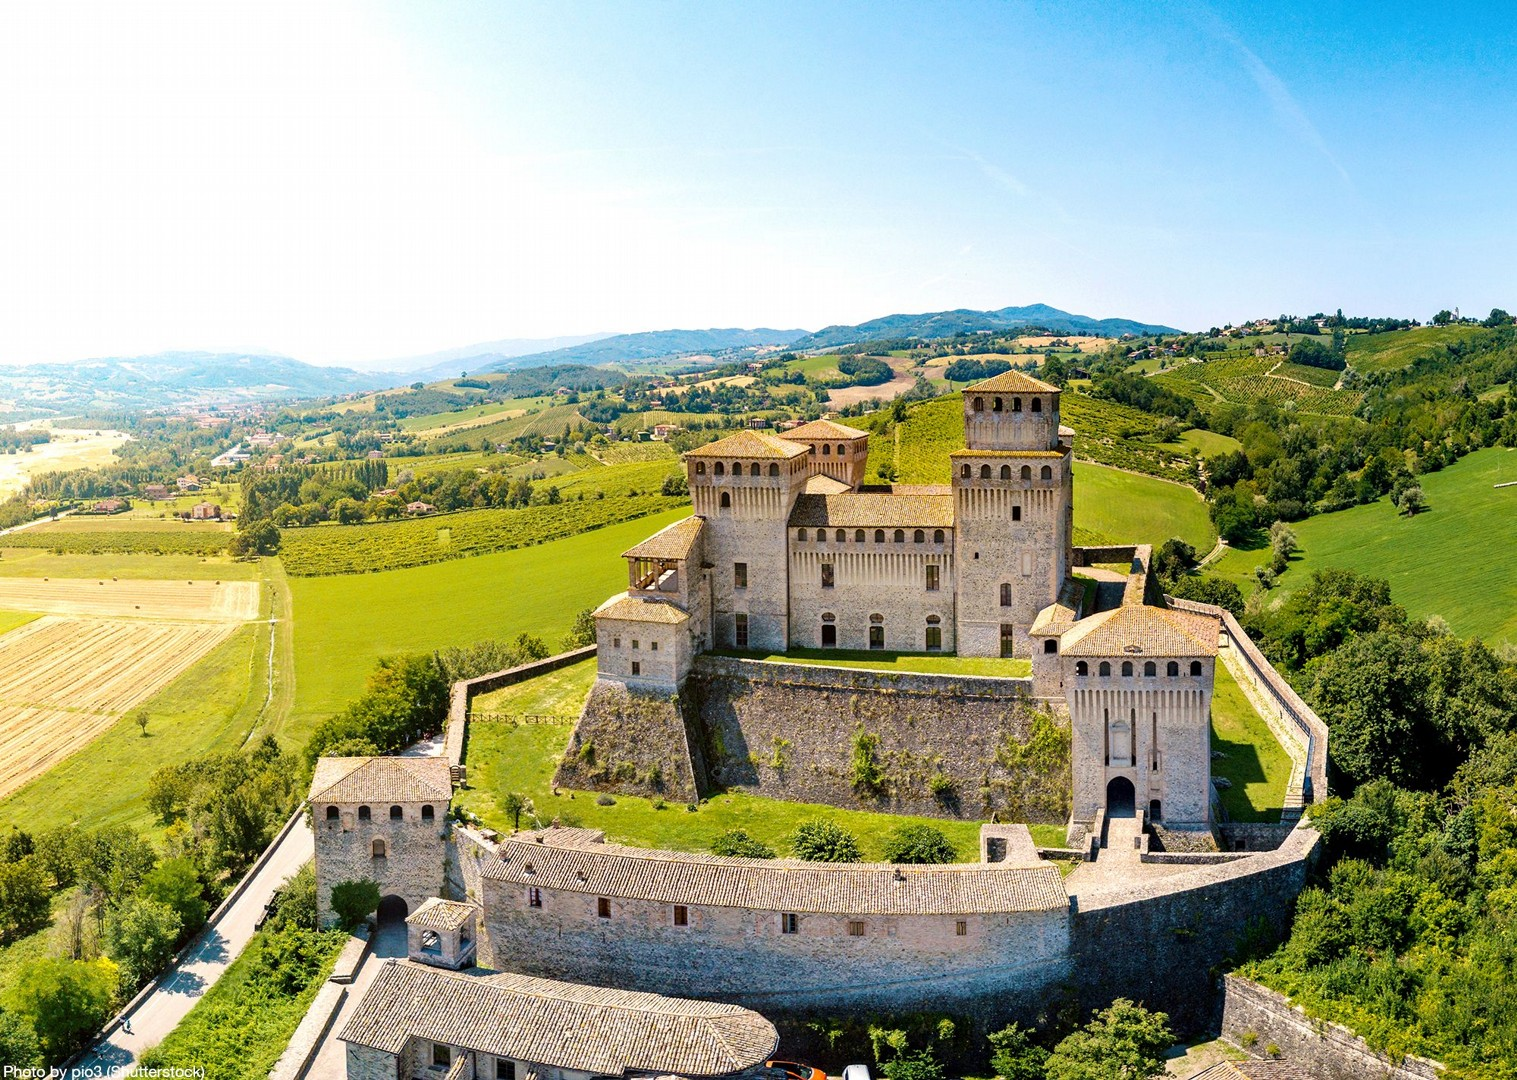 torrechiara-castle-italy-parma-self-guided-leisure-cycling-holiday.jpg - Italy - Emilia Romagna - Self-Guided Leisure Cycling Holiday - Leisure Cycling